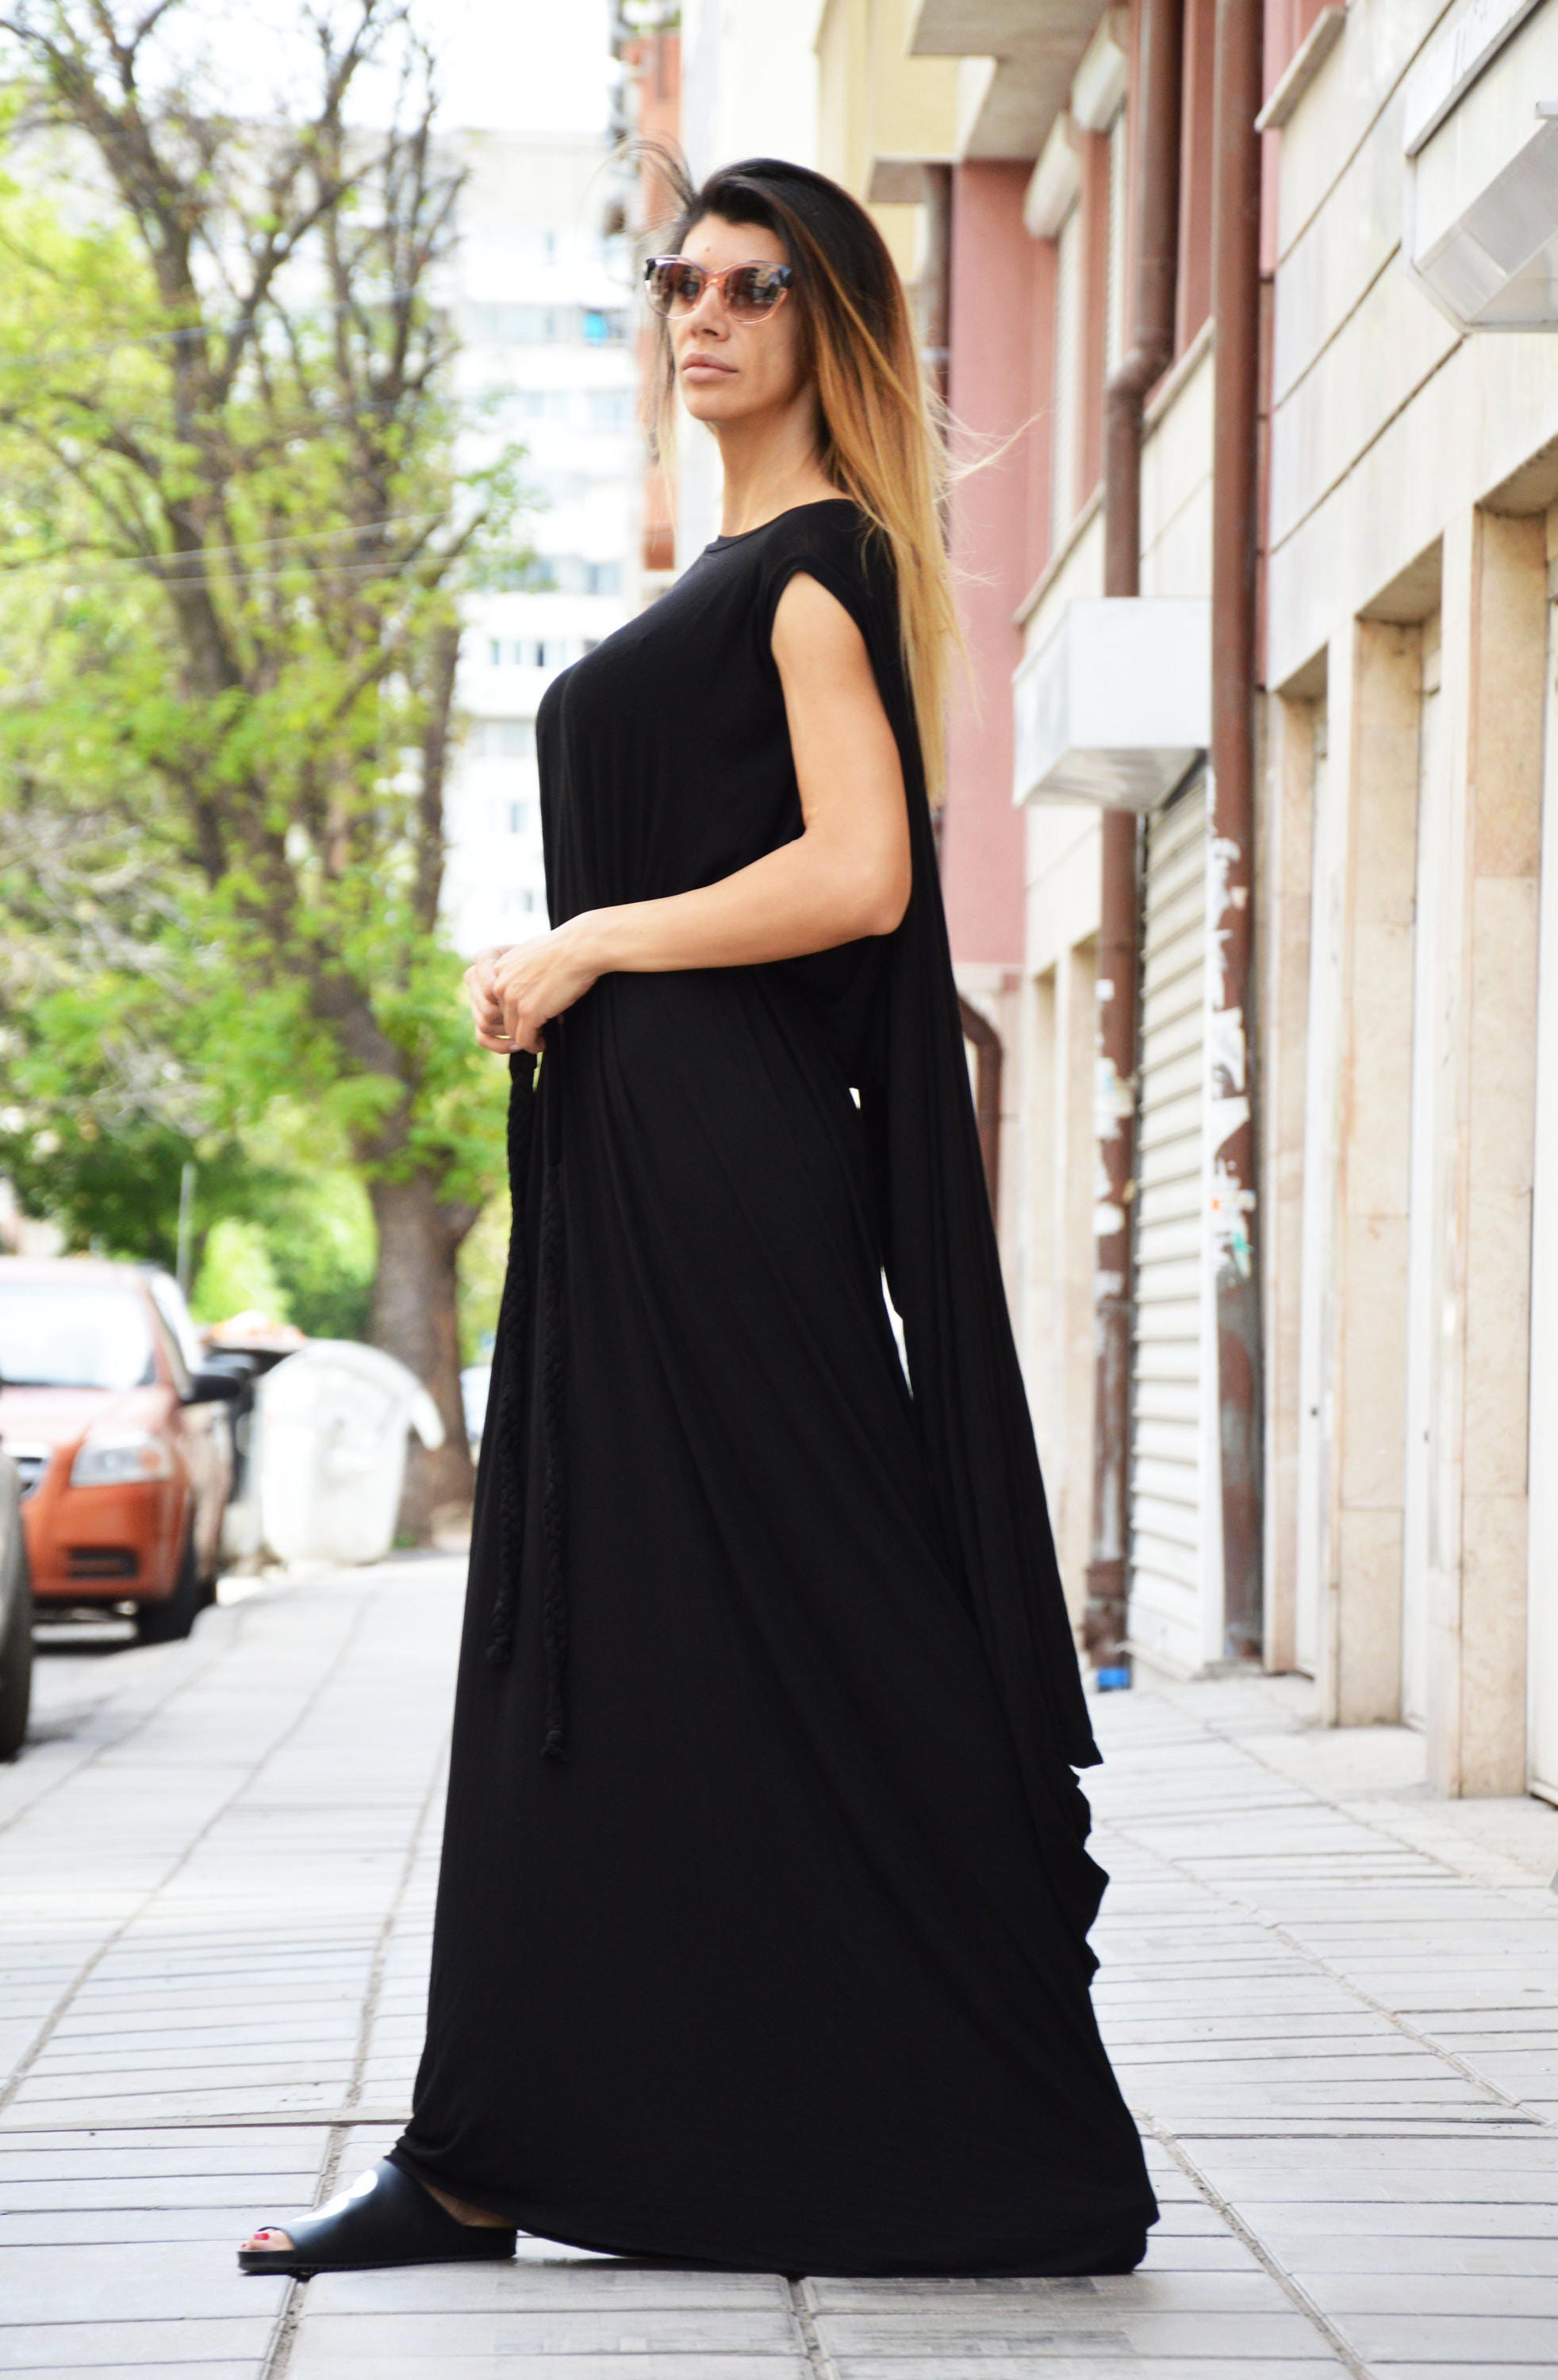 bcae150cf7cc Women maxi dress, Hooded dress, Asymmetric Tunic Top, Elegant Summer Dress, Loose  Fit Long Kaftan, Maxi Dress, Black Dress by SSDfashion